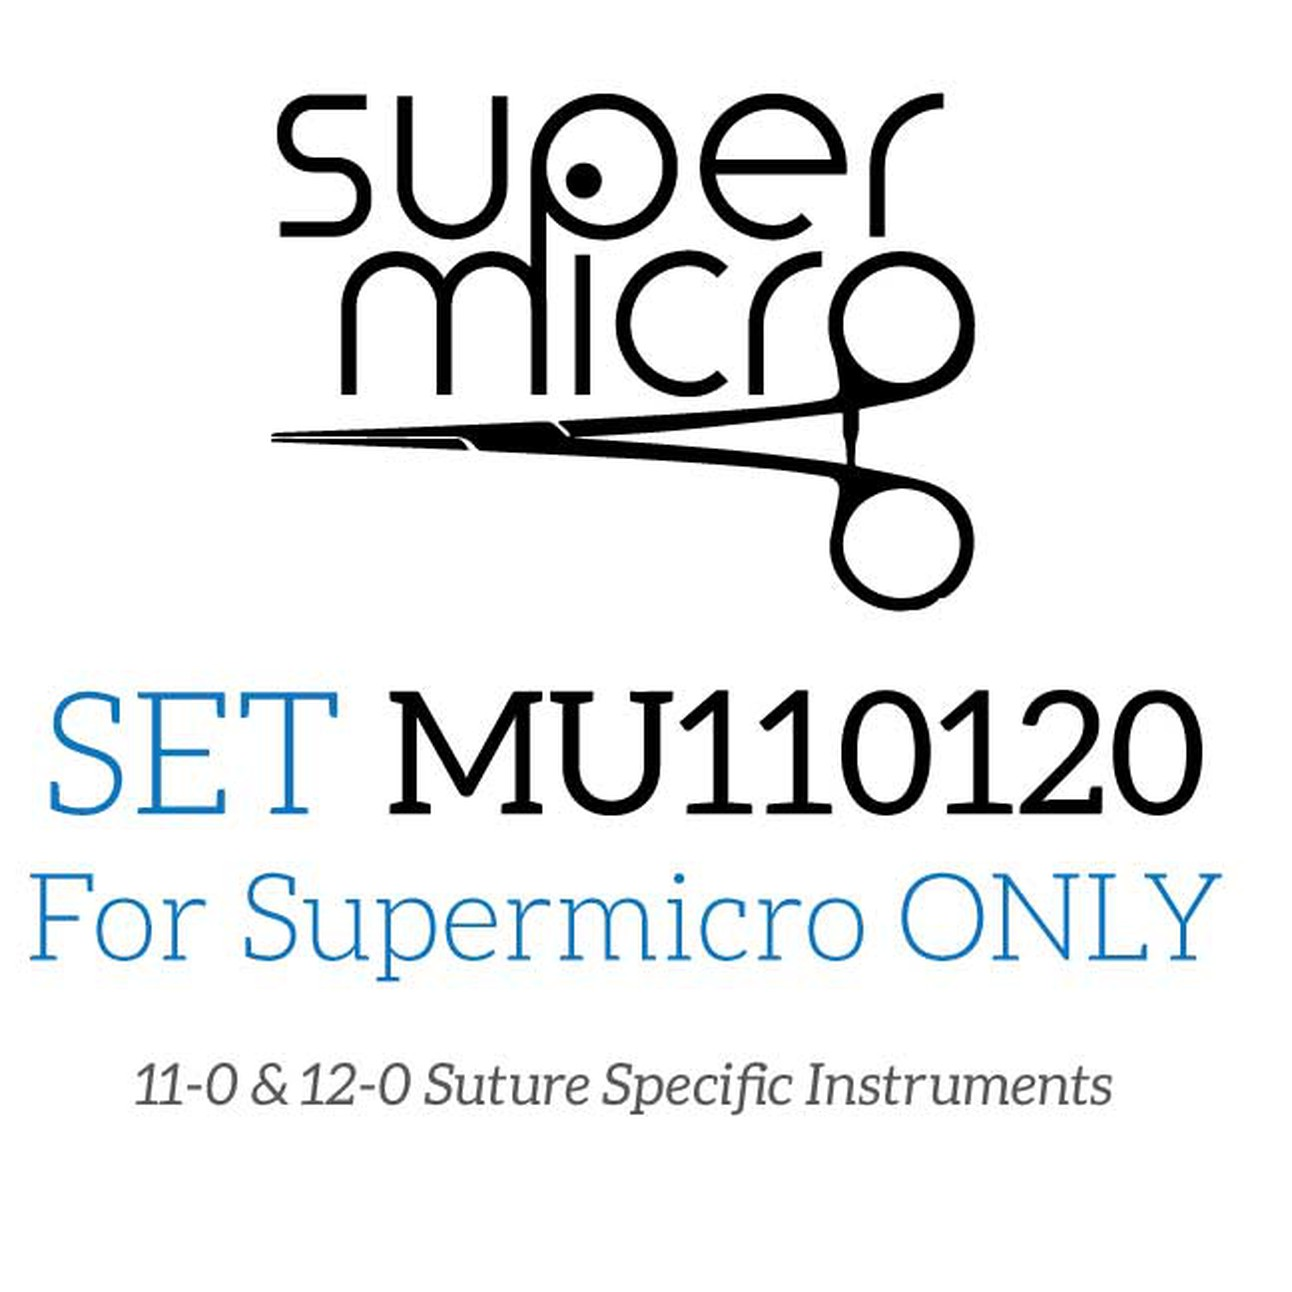 Super micro Only Surgical Instrument Set